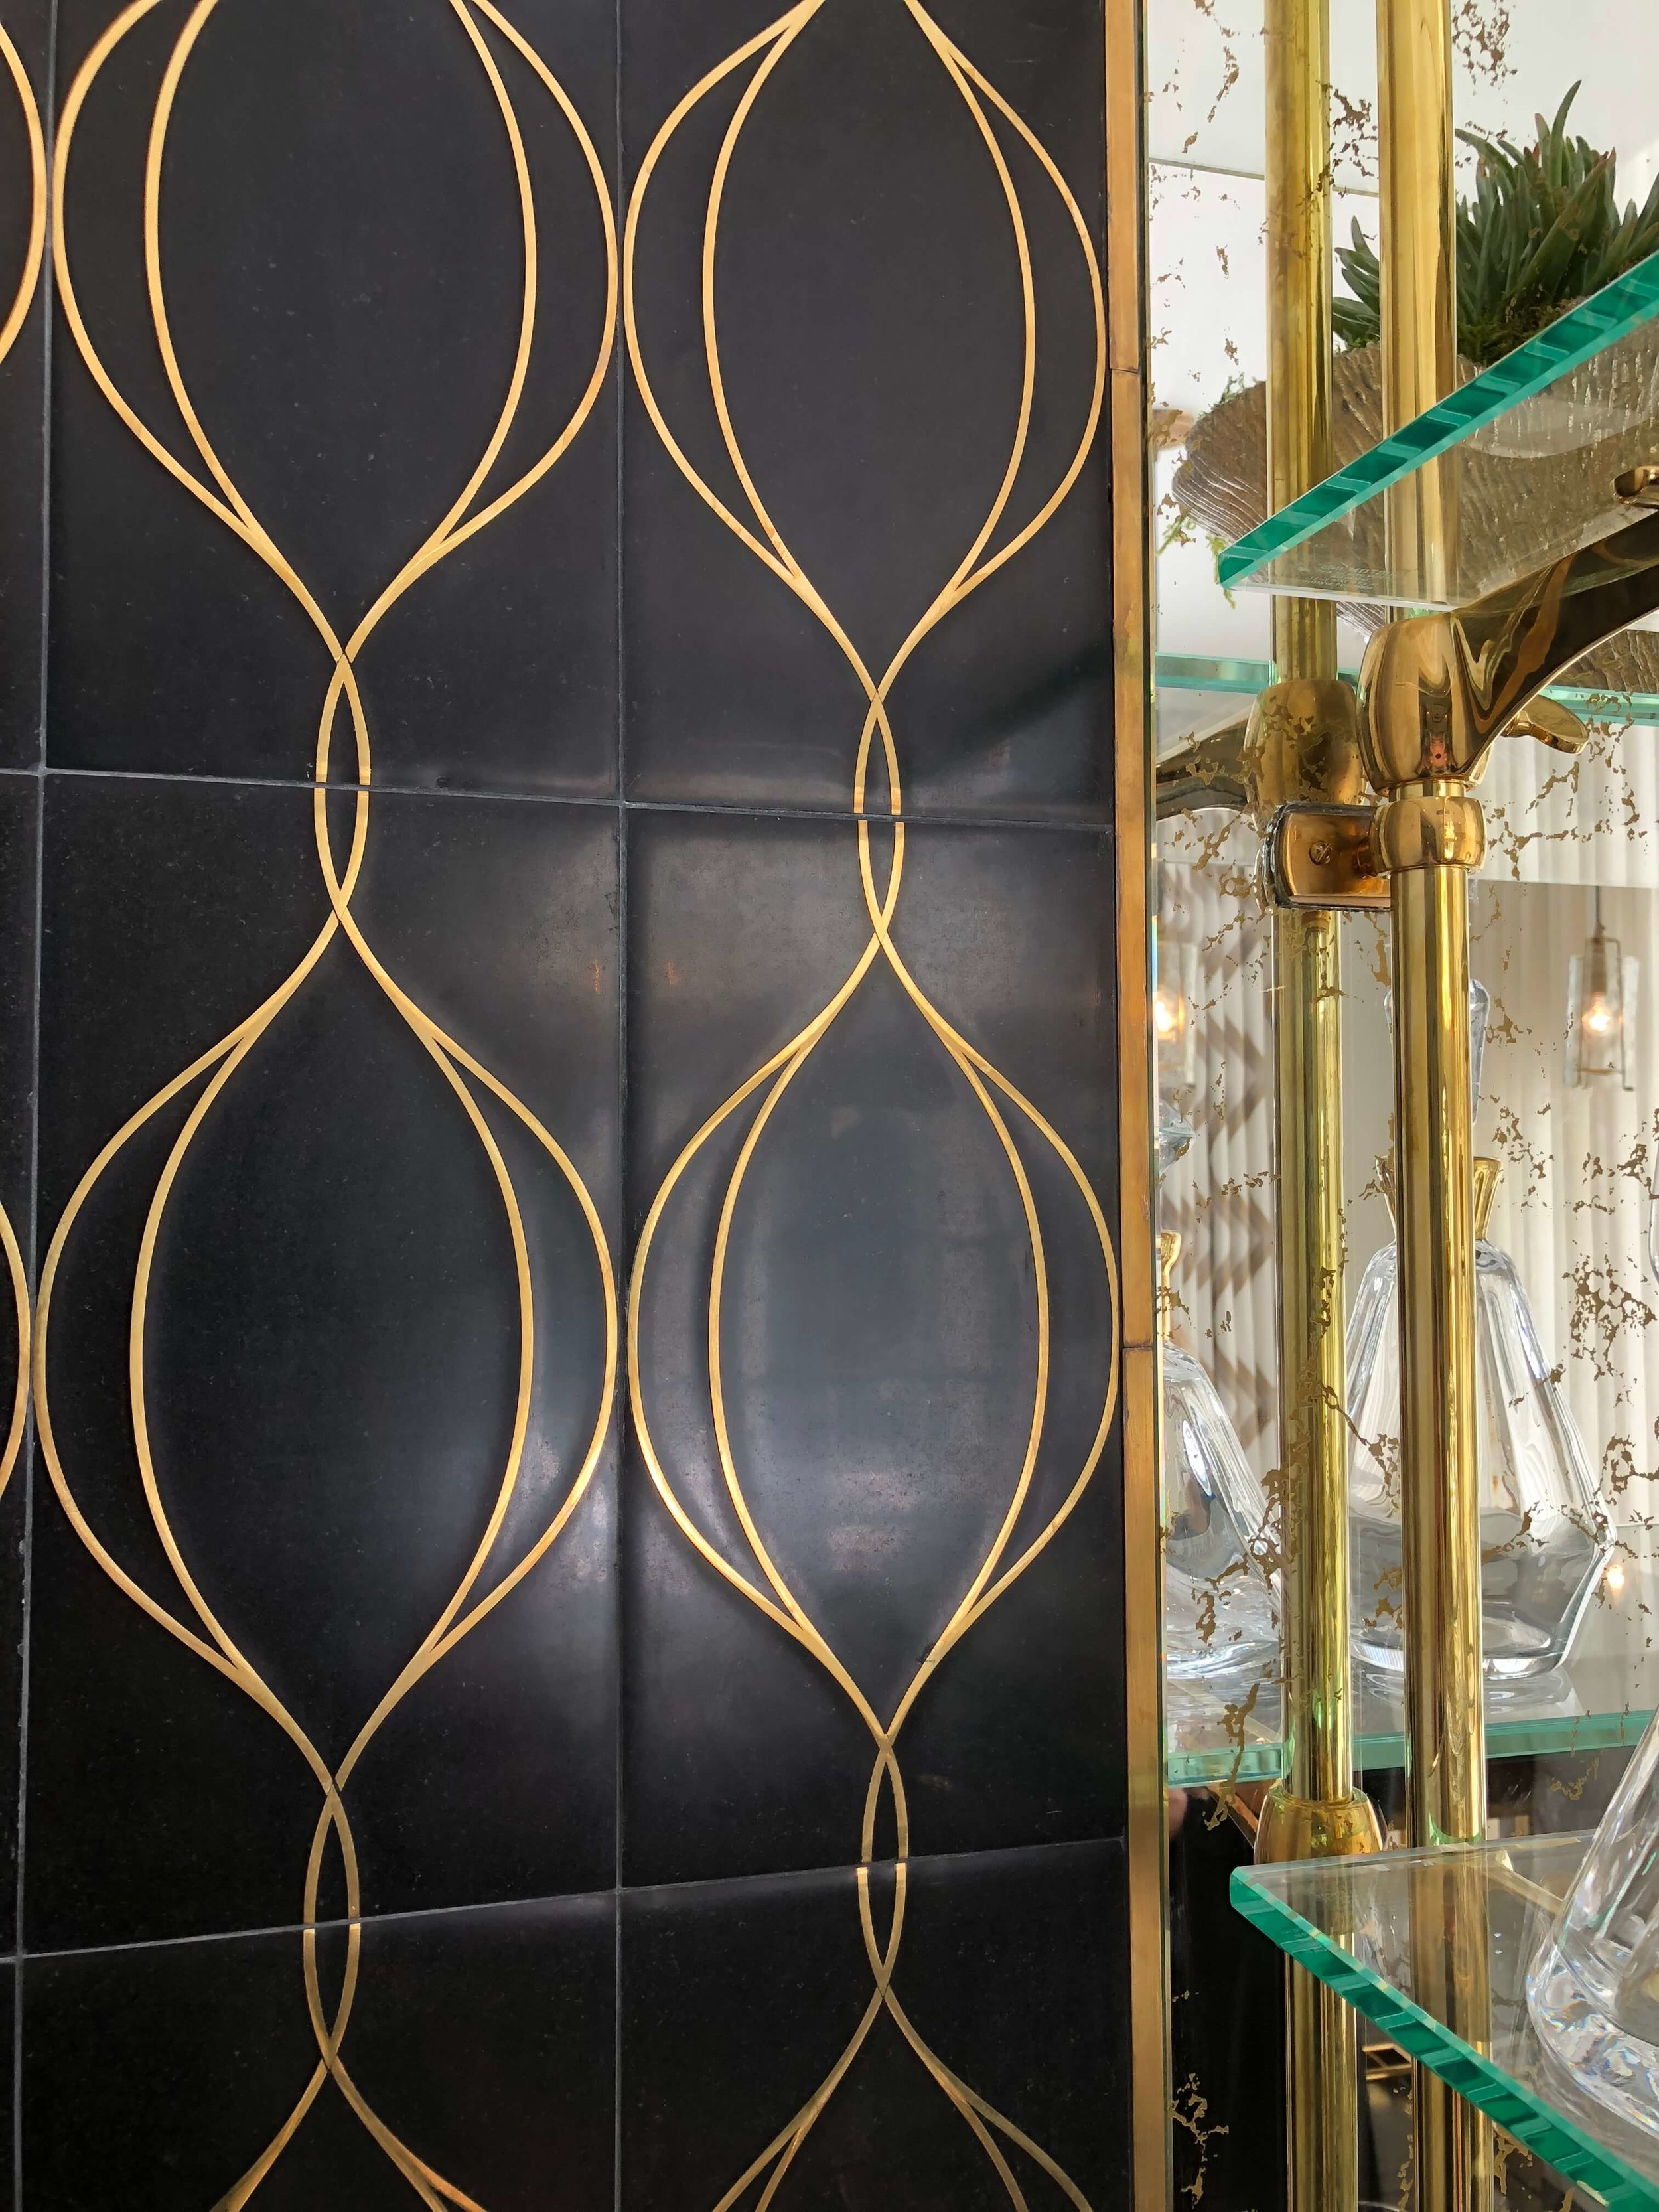 Brass inlay marble tile from Walker Zanger in the wet bar designed by Designs of the Interior at the Pasadena Showcase House of Design 2018 #wetbar #brassinlay #brassdetail #marbletile